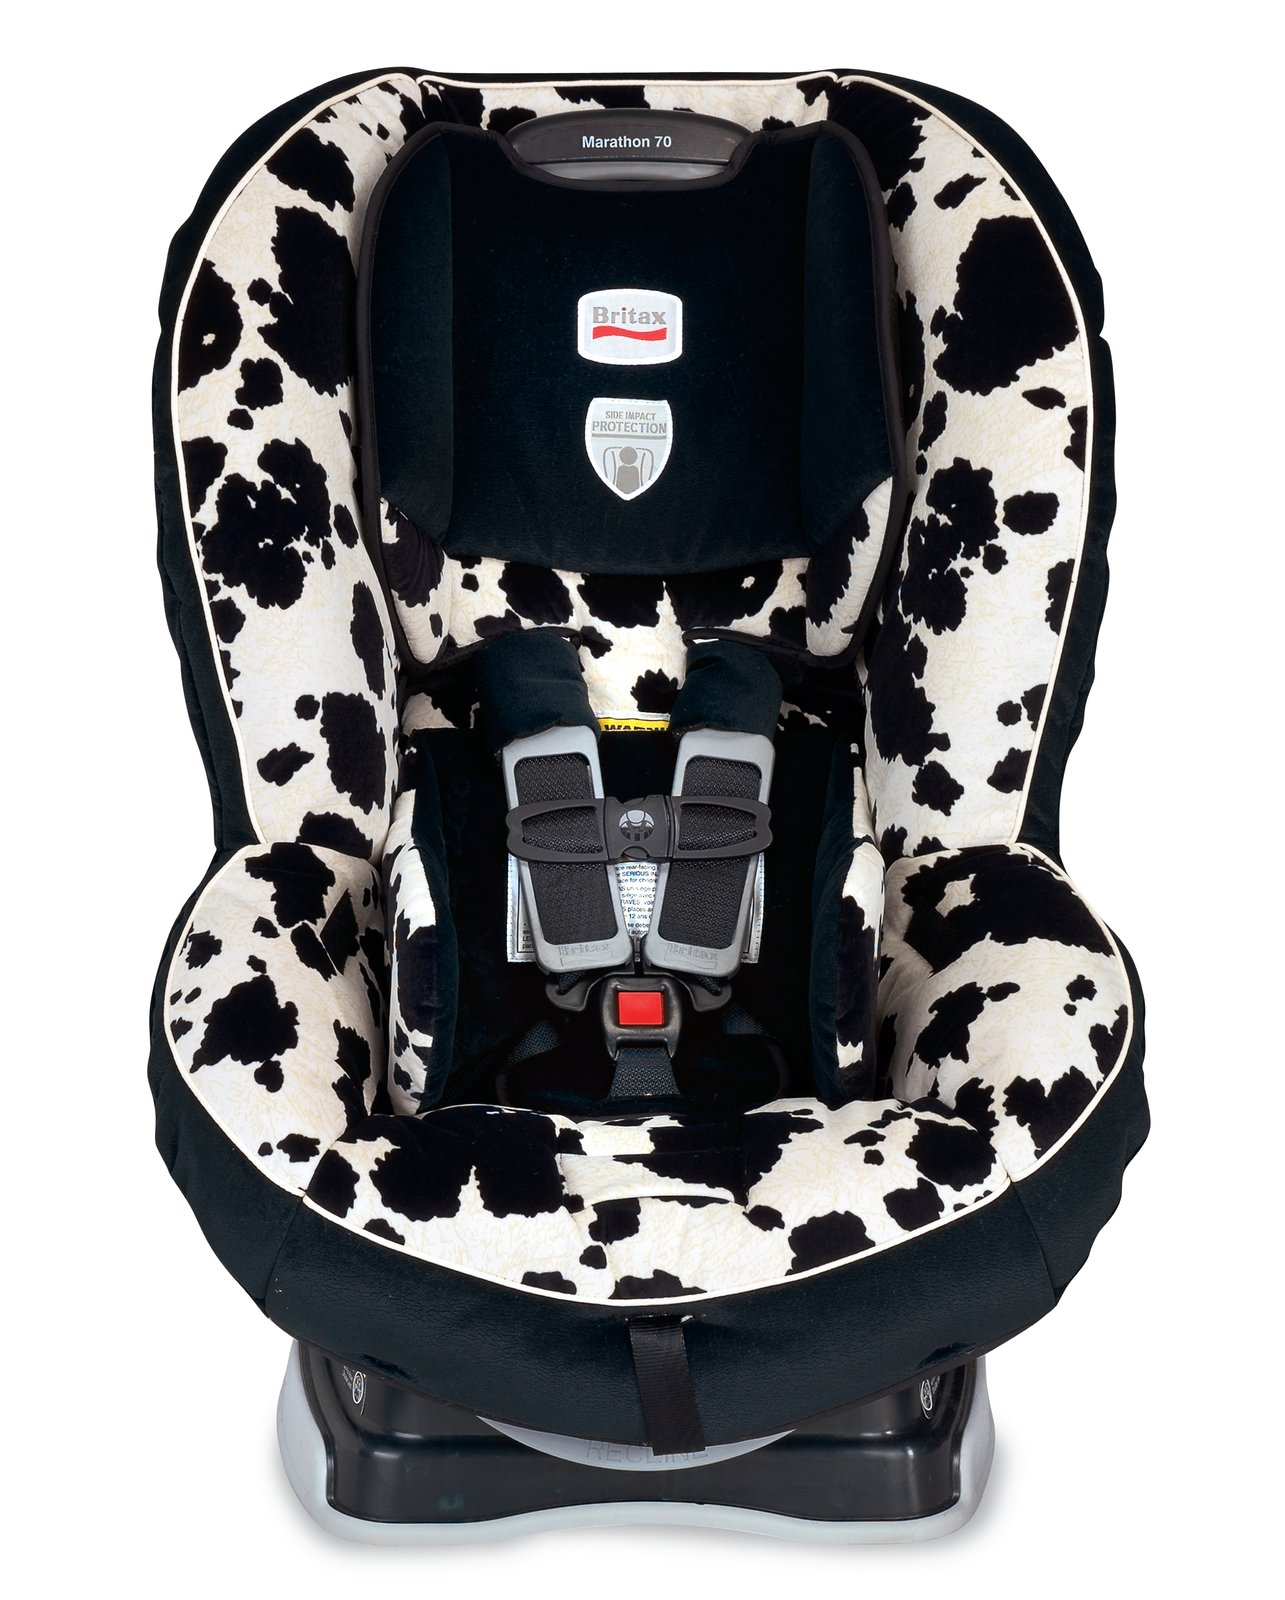 Top 10 Car Seats From Diapers